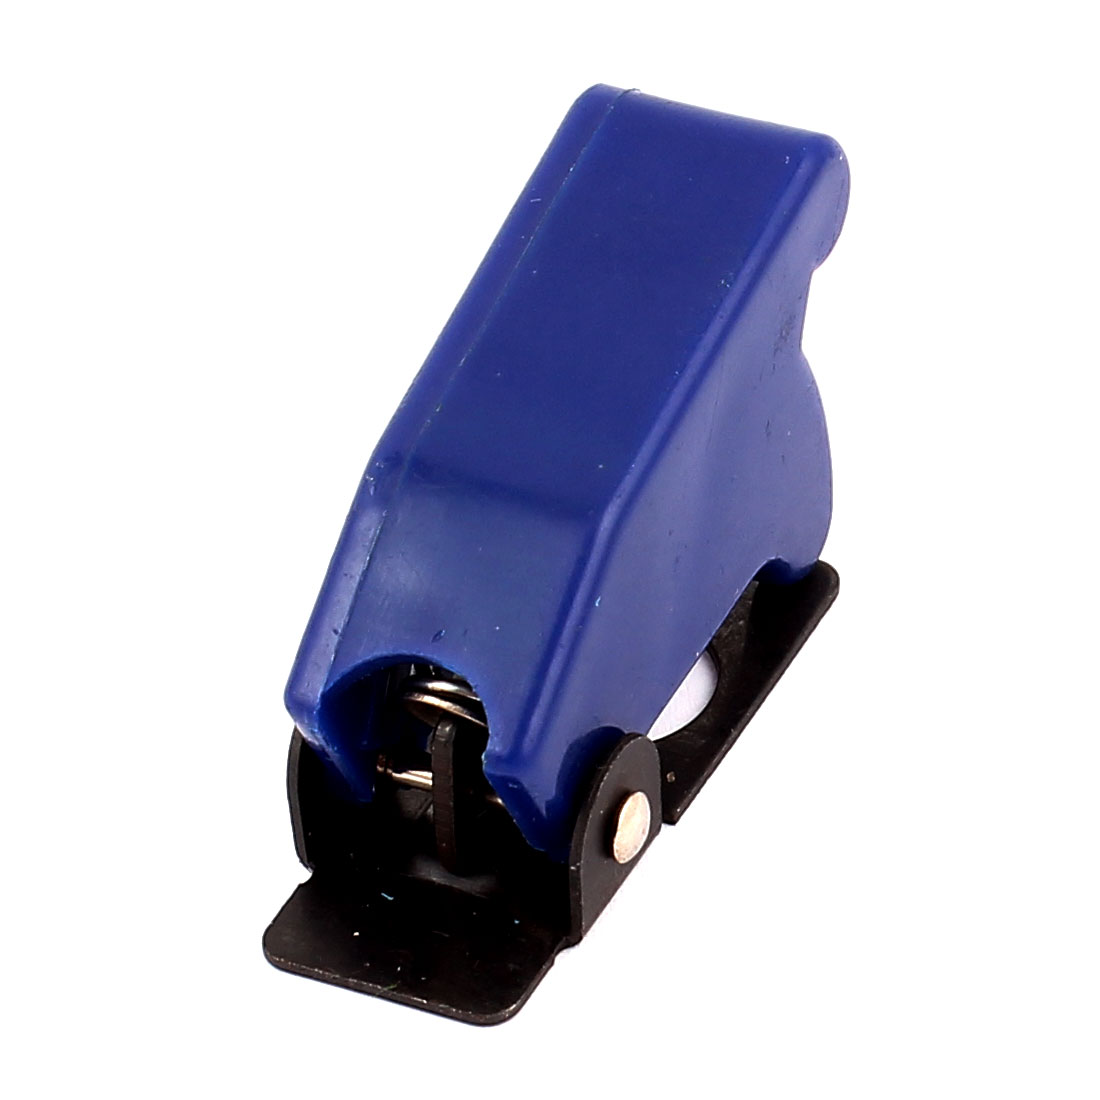 SAC-01 12mm Mount Diameter Blue Safety Flip Cover for Toggle Switch